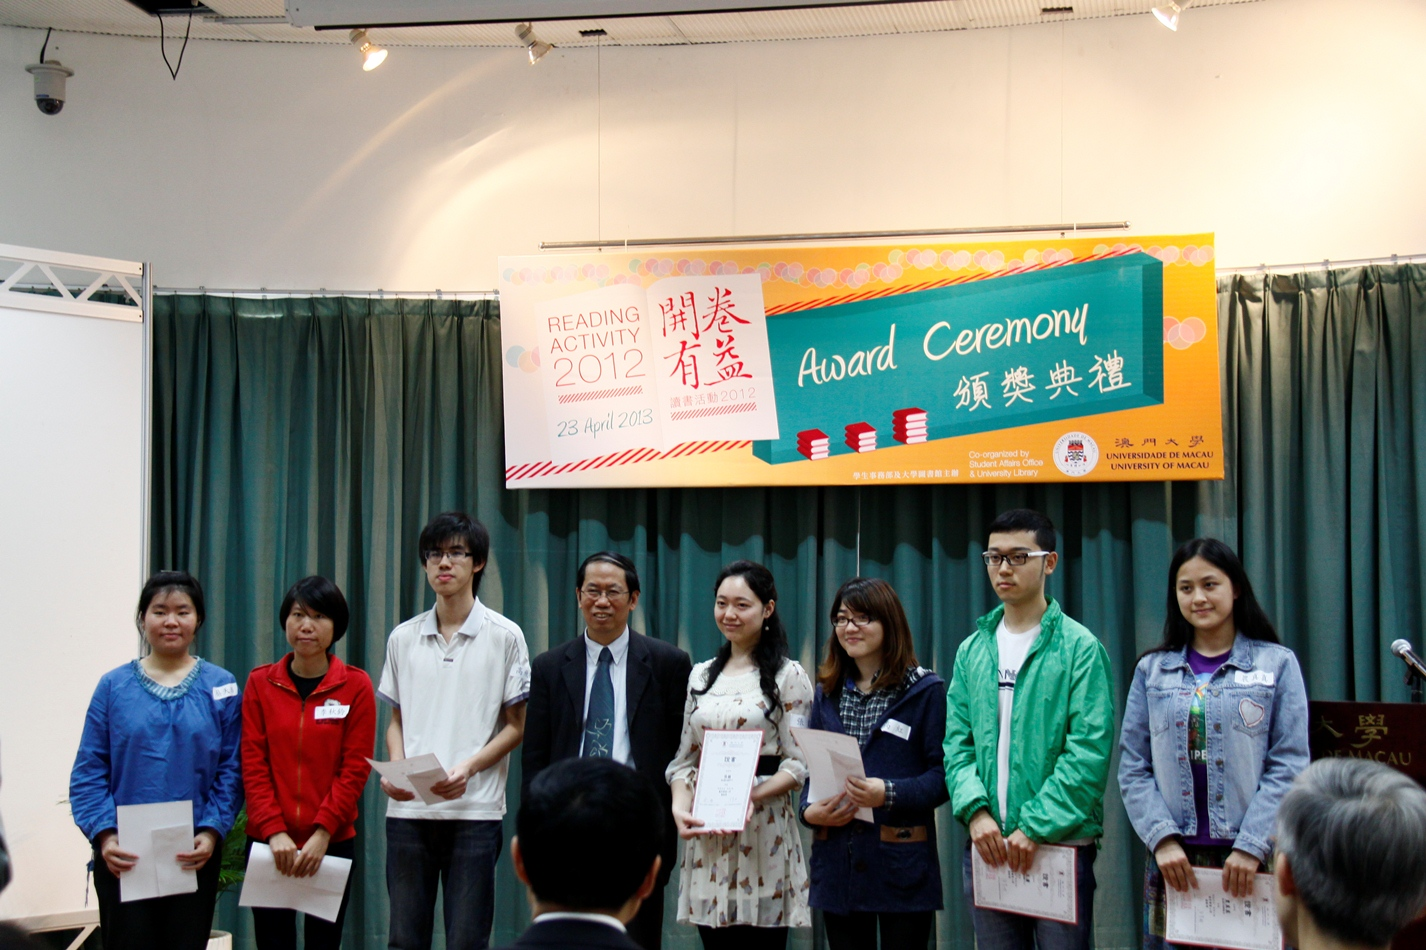 Group photo of Prof. Chen Pingyuan (4th from left) and winning students